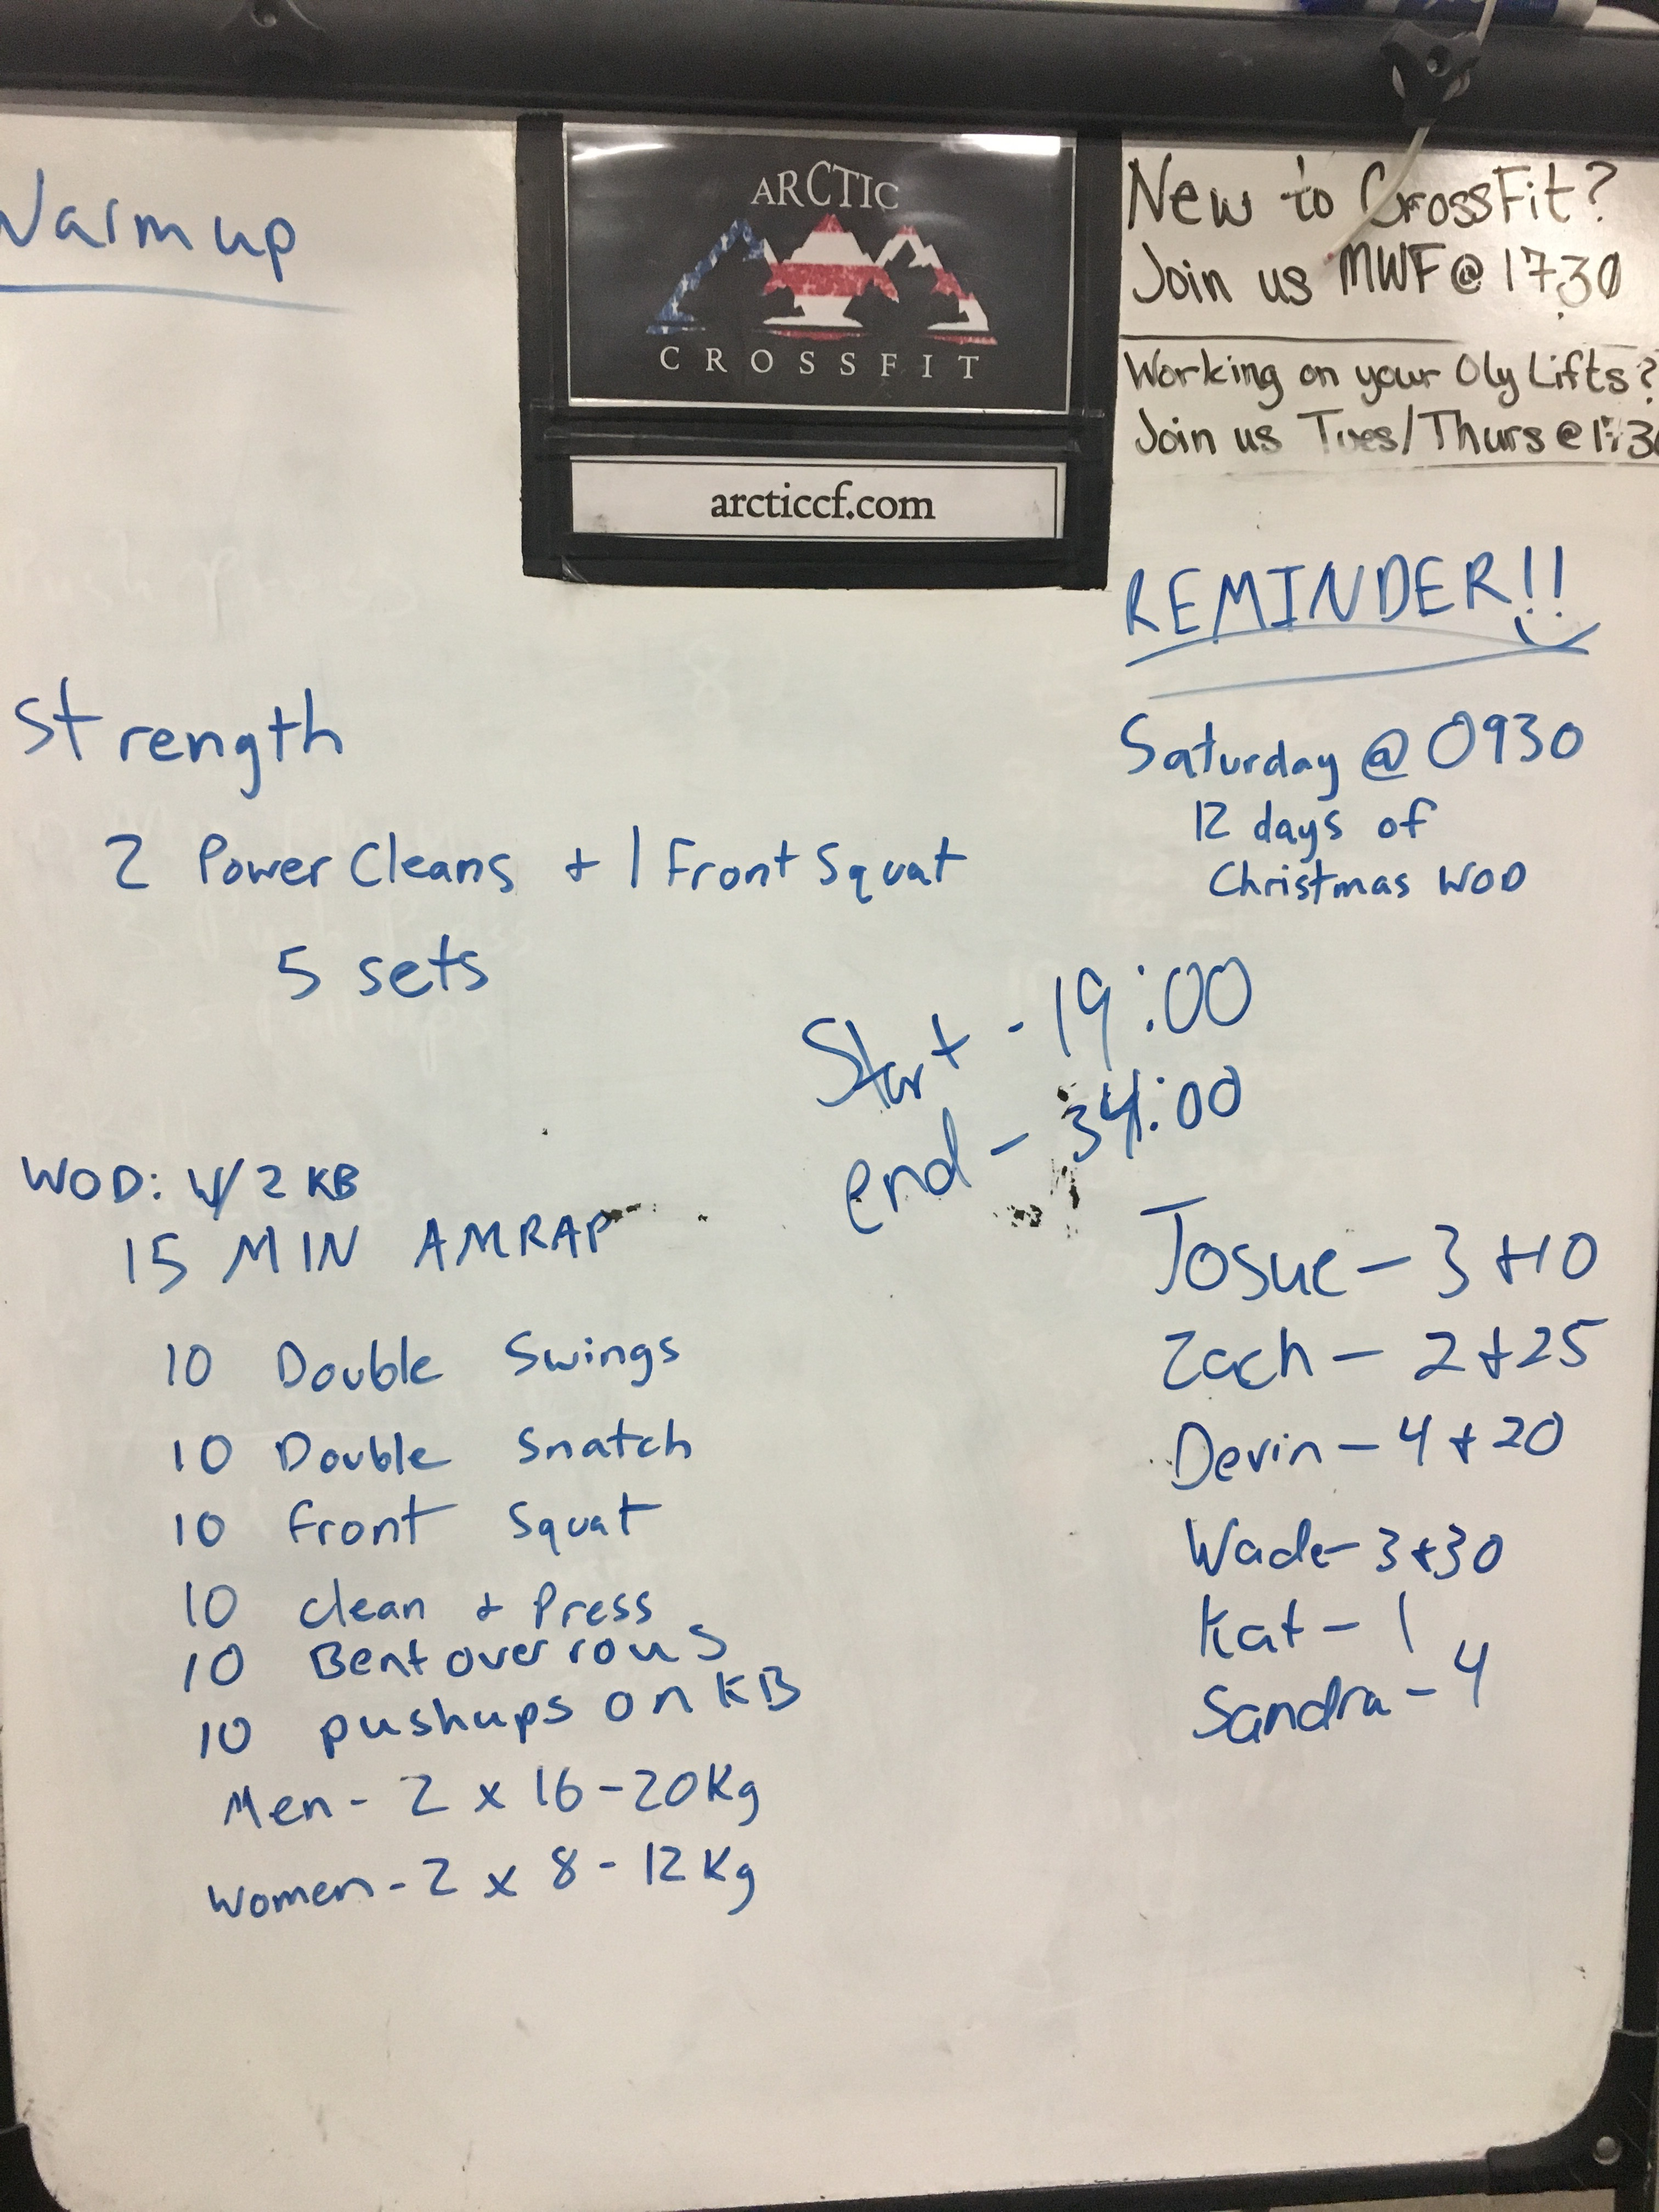 12 Days Of Christmas Crossfit Wod.Uncategorized Arctic Crossfit Page 68